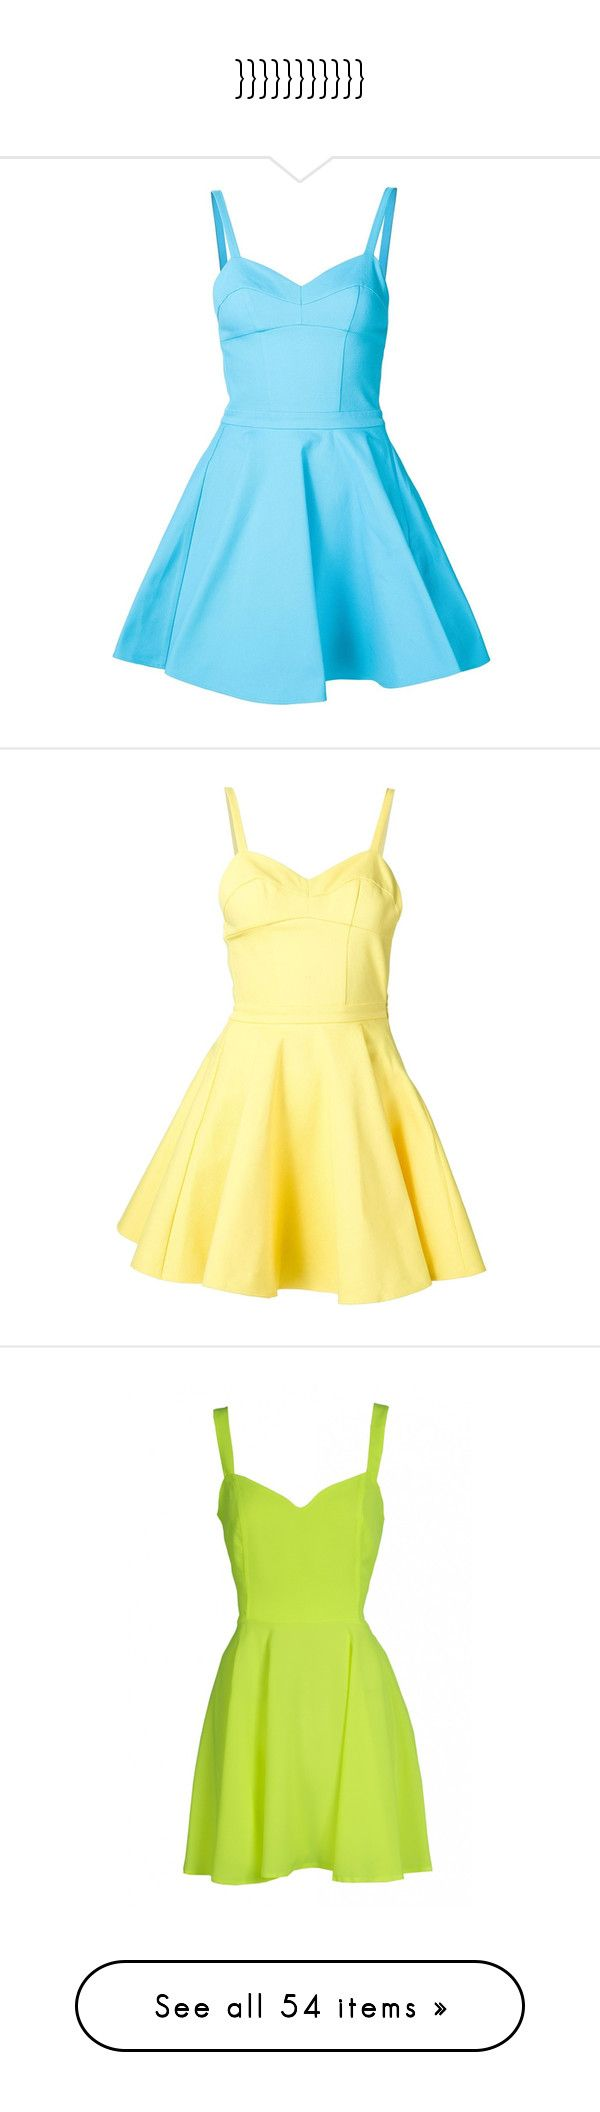 """""""}}}}}}}}}}}"""" by lulucosby ❤ liked on Polyvore featuring dresses, vestidos, short dresses, blue, fit flare dress, jeremy scott dress, blue cotton dress, fit and flare dress, jeremy scott and yellow cotton dress"""